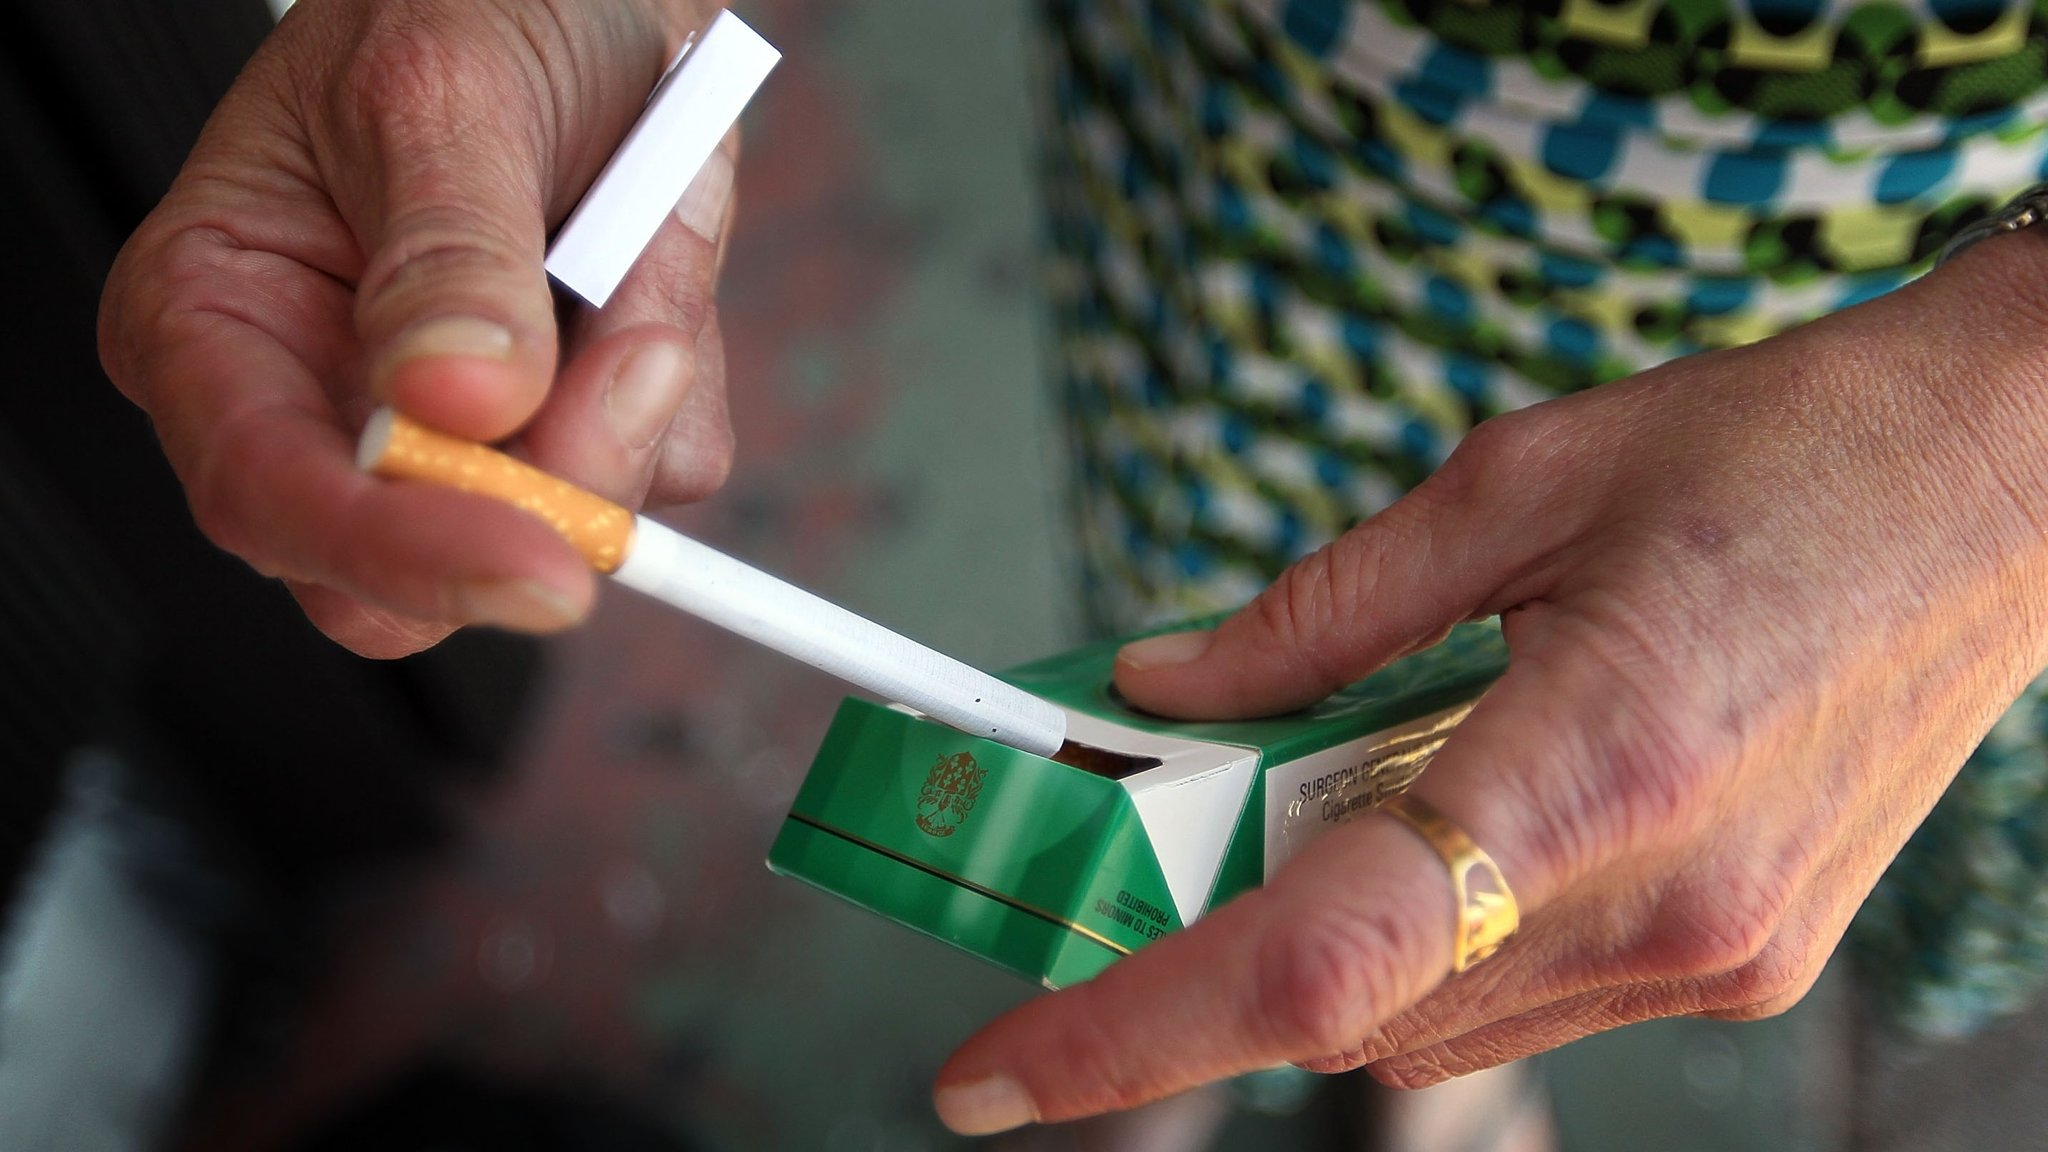 Big Tobacco prepares to fight proposed ban on menthol cigarettes